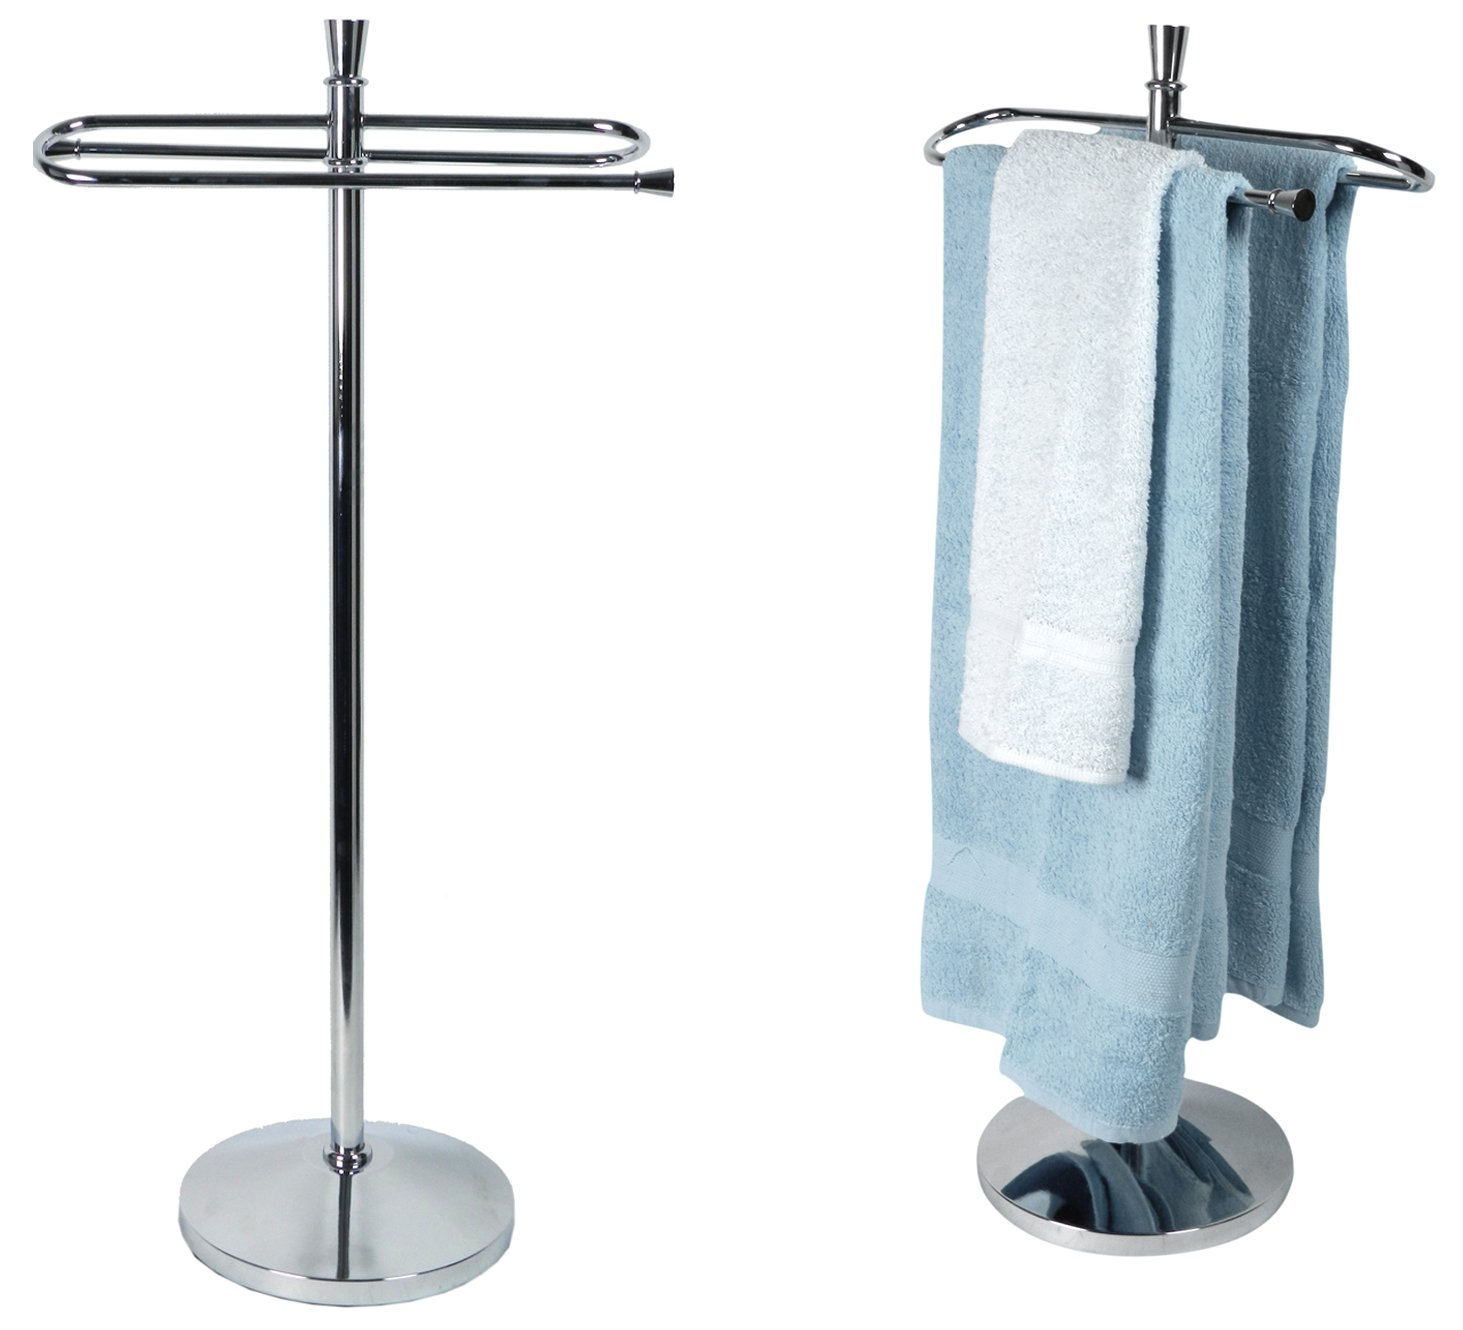 Solid Weld, No Assembly, Chrome Plated, ''Conic'' Free Standing Bath Towel Rack + Shelf, For Bathroom Storage